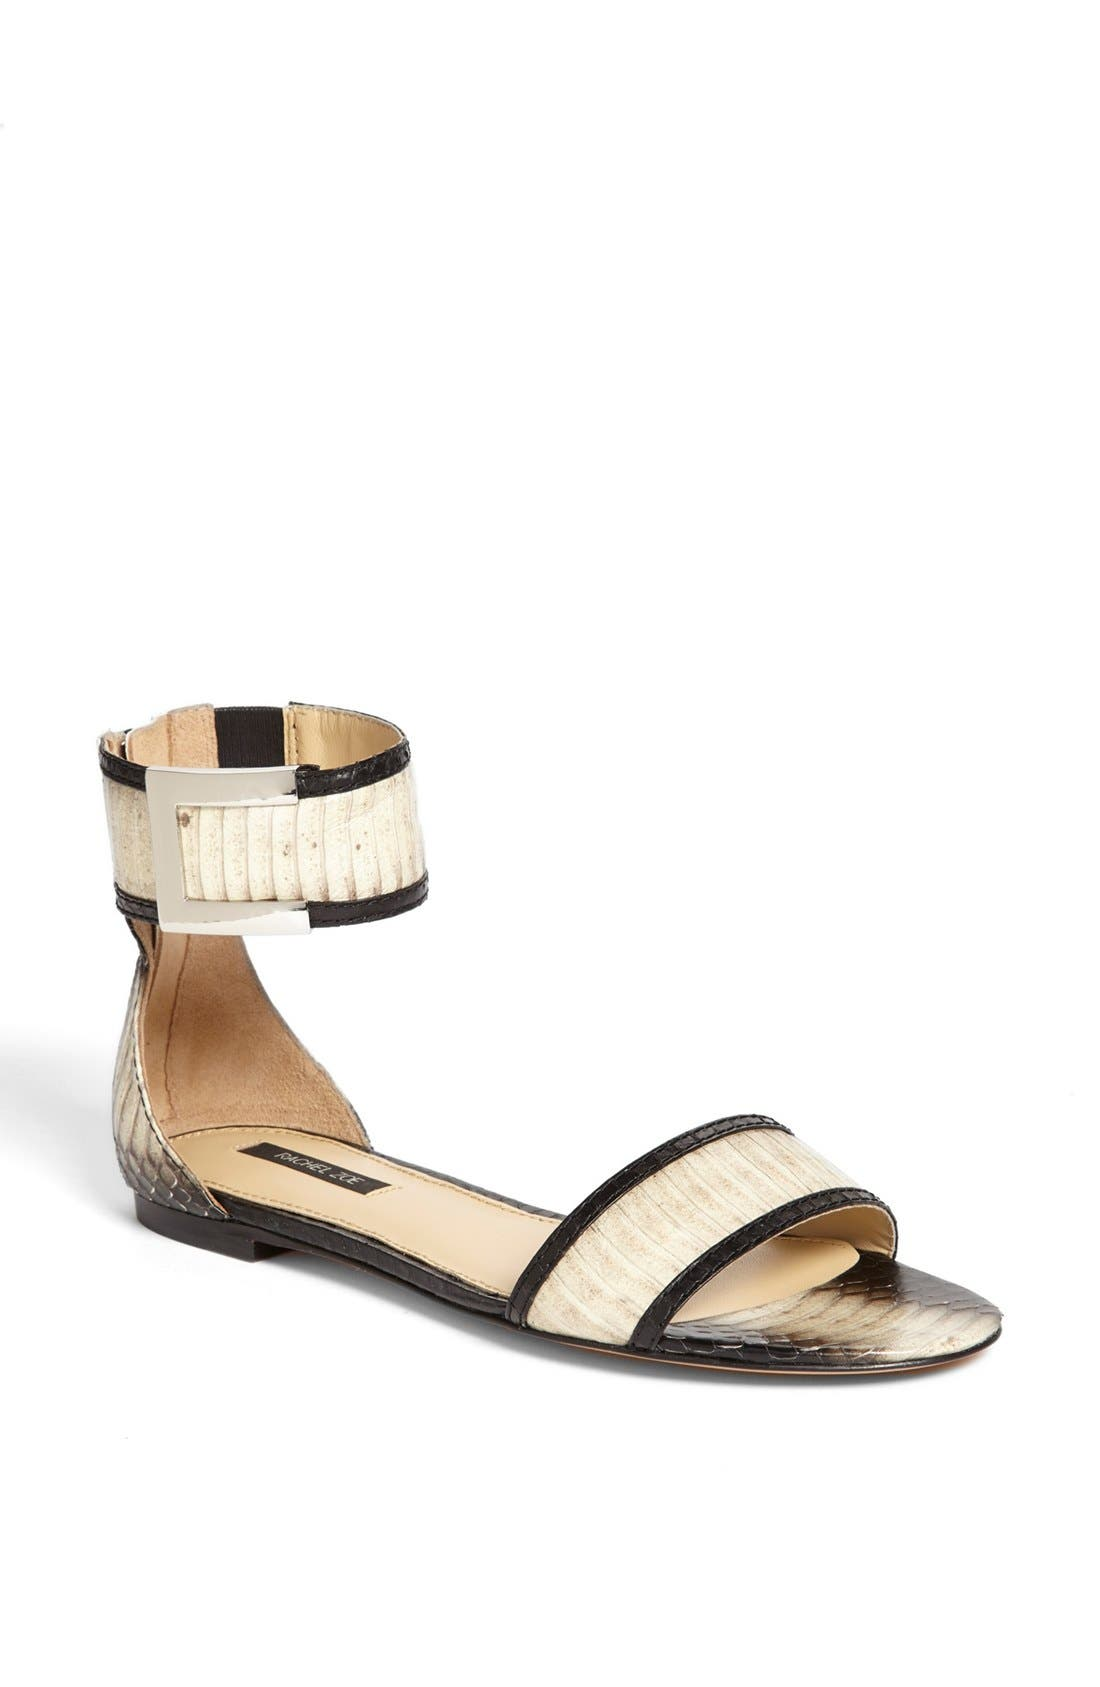 Alternate Image 1 Selected - Rachel Zoe 'Gracie' Genuine Snakeskin Sandal